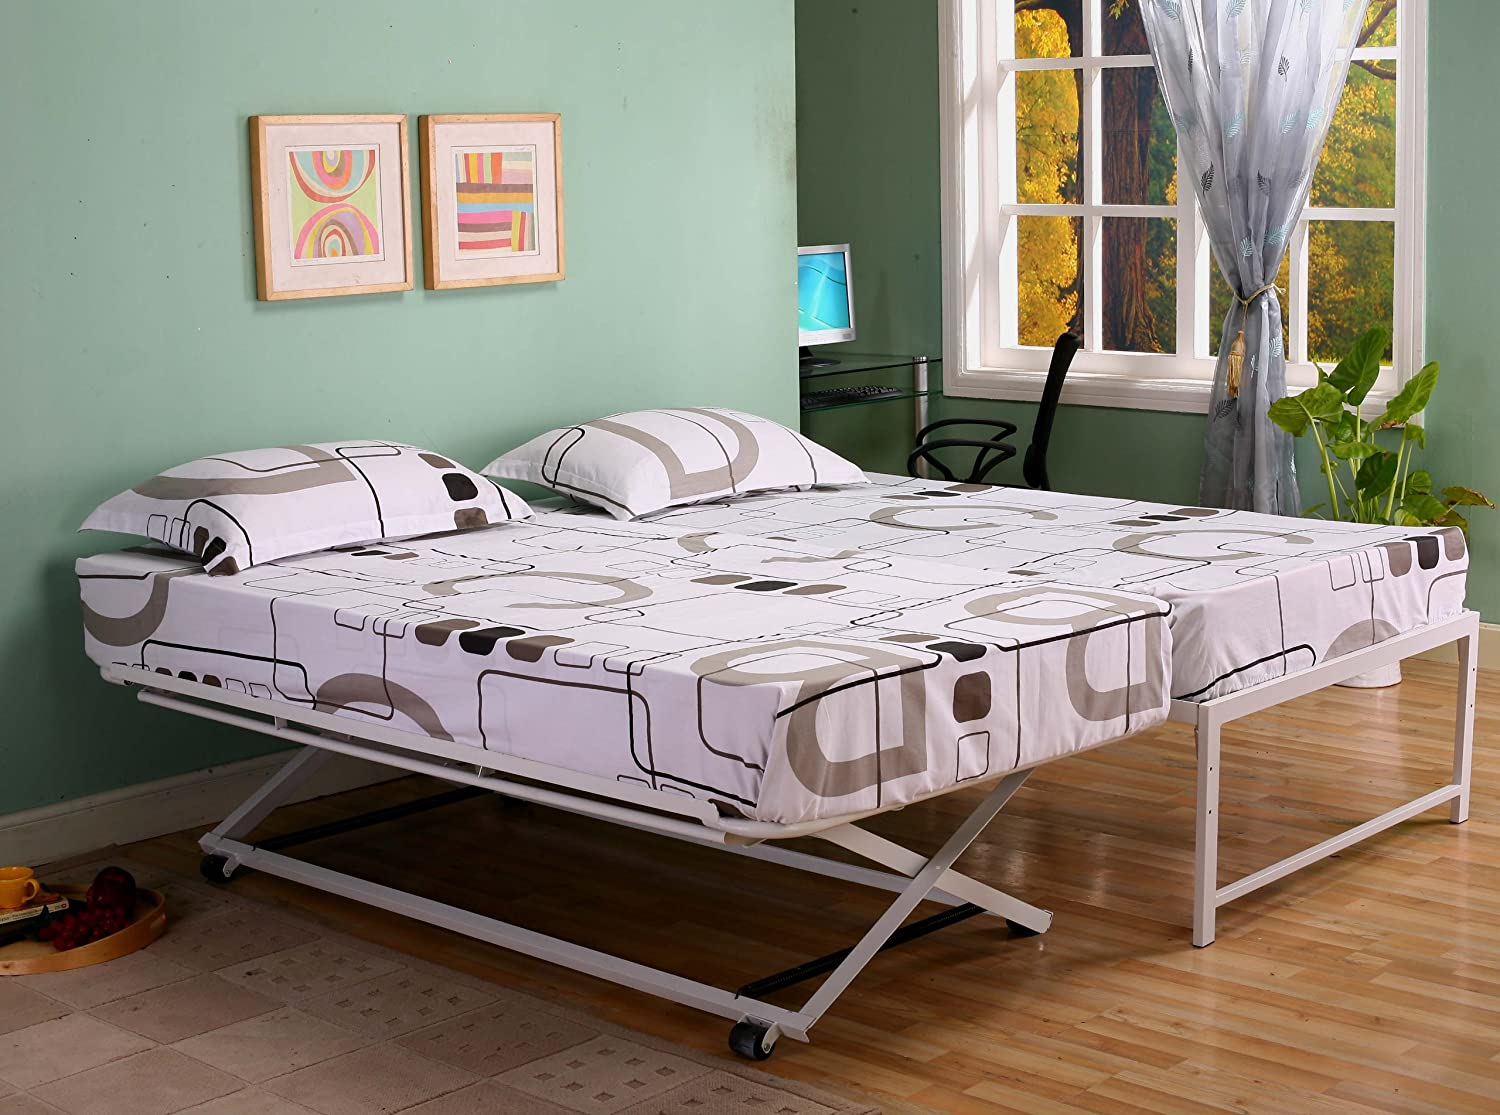 Amazon.com: Kings Brand Furniture Twin Size Steel Day Bed (Daybed) Frame  with Pop Up Trundle & Mattresses: Kitchen & Dining